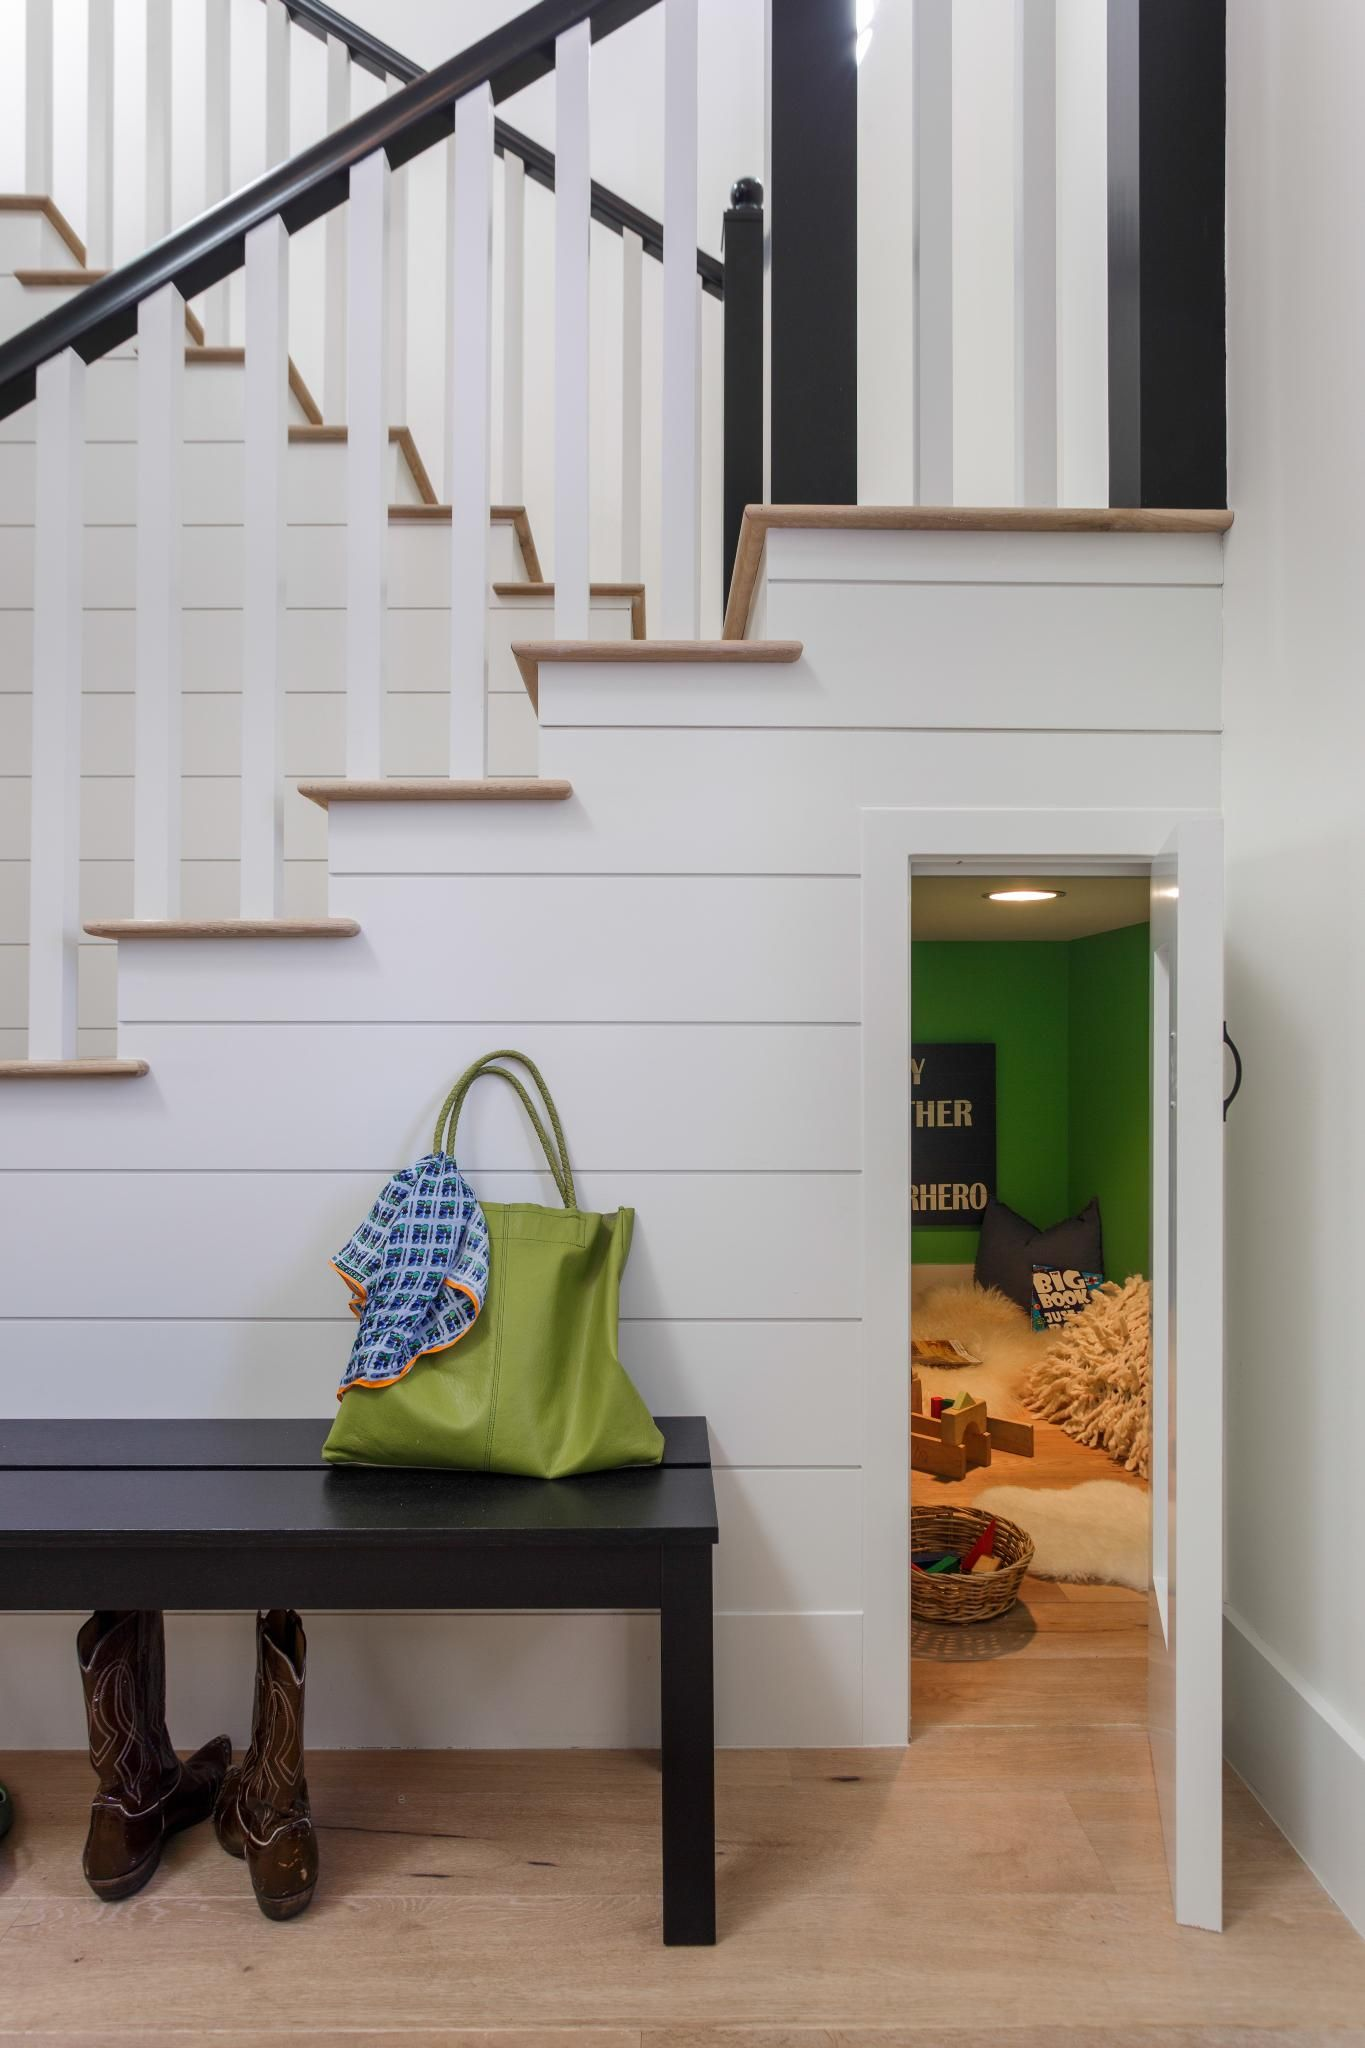 Nice 35 Insanely Creative Hidden Doors For Secret Rooms: 12 Creative Ways To Use The Space Under Your Stairs